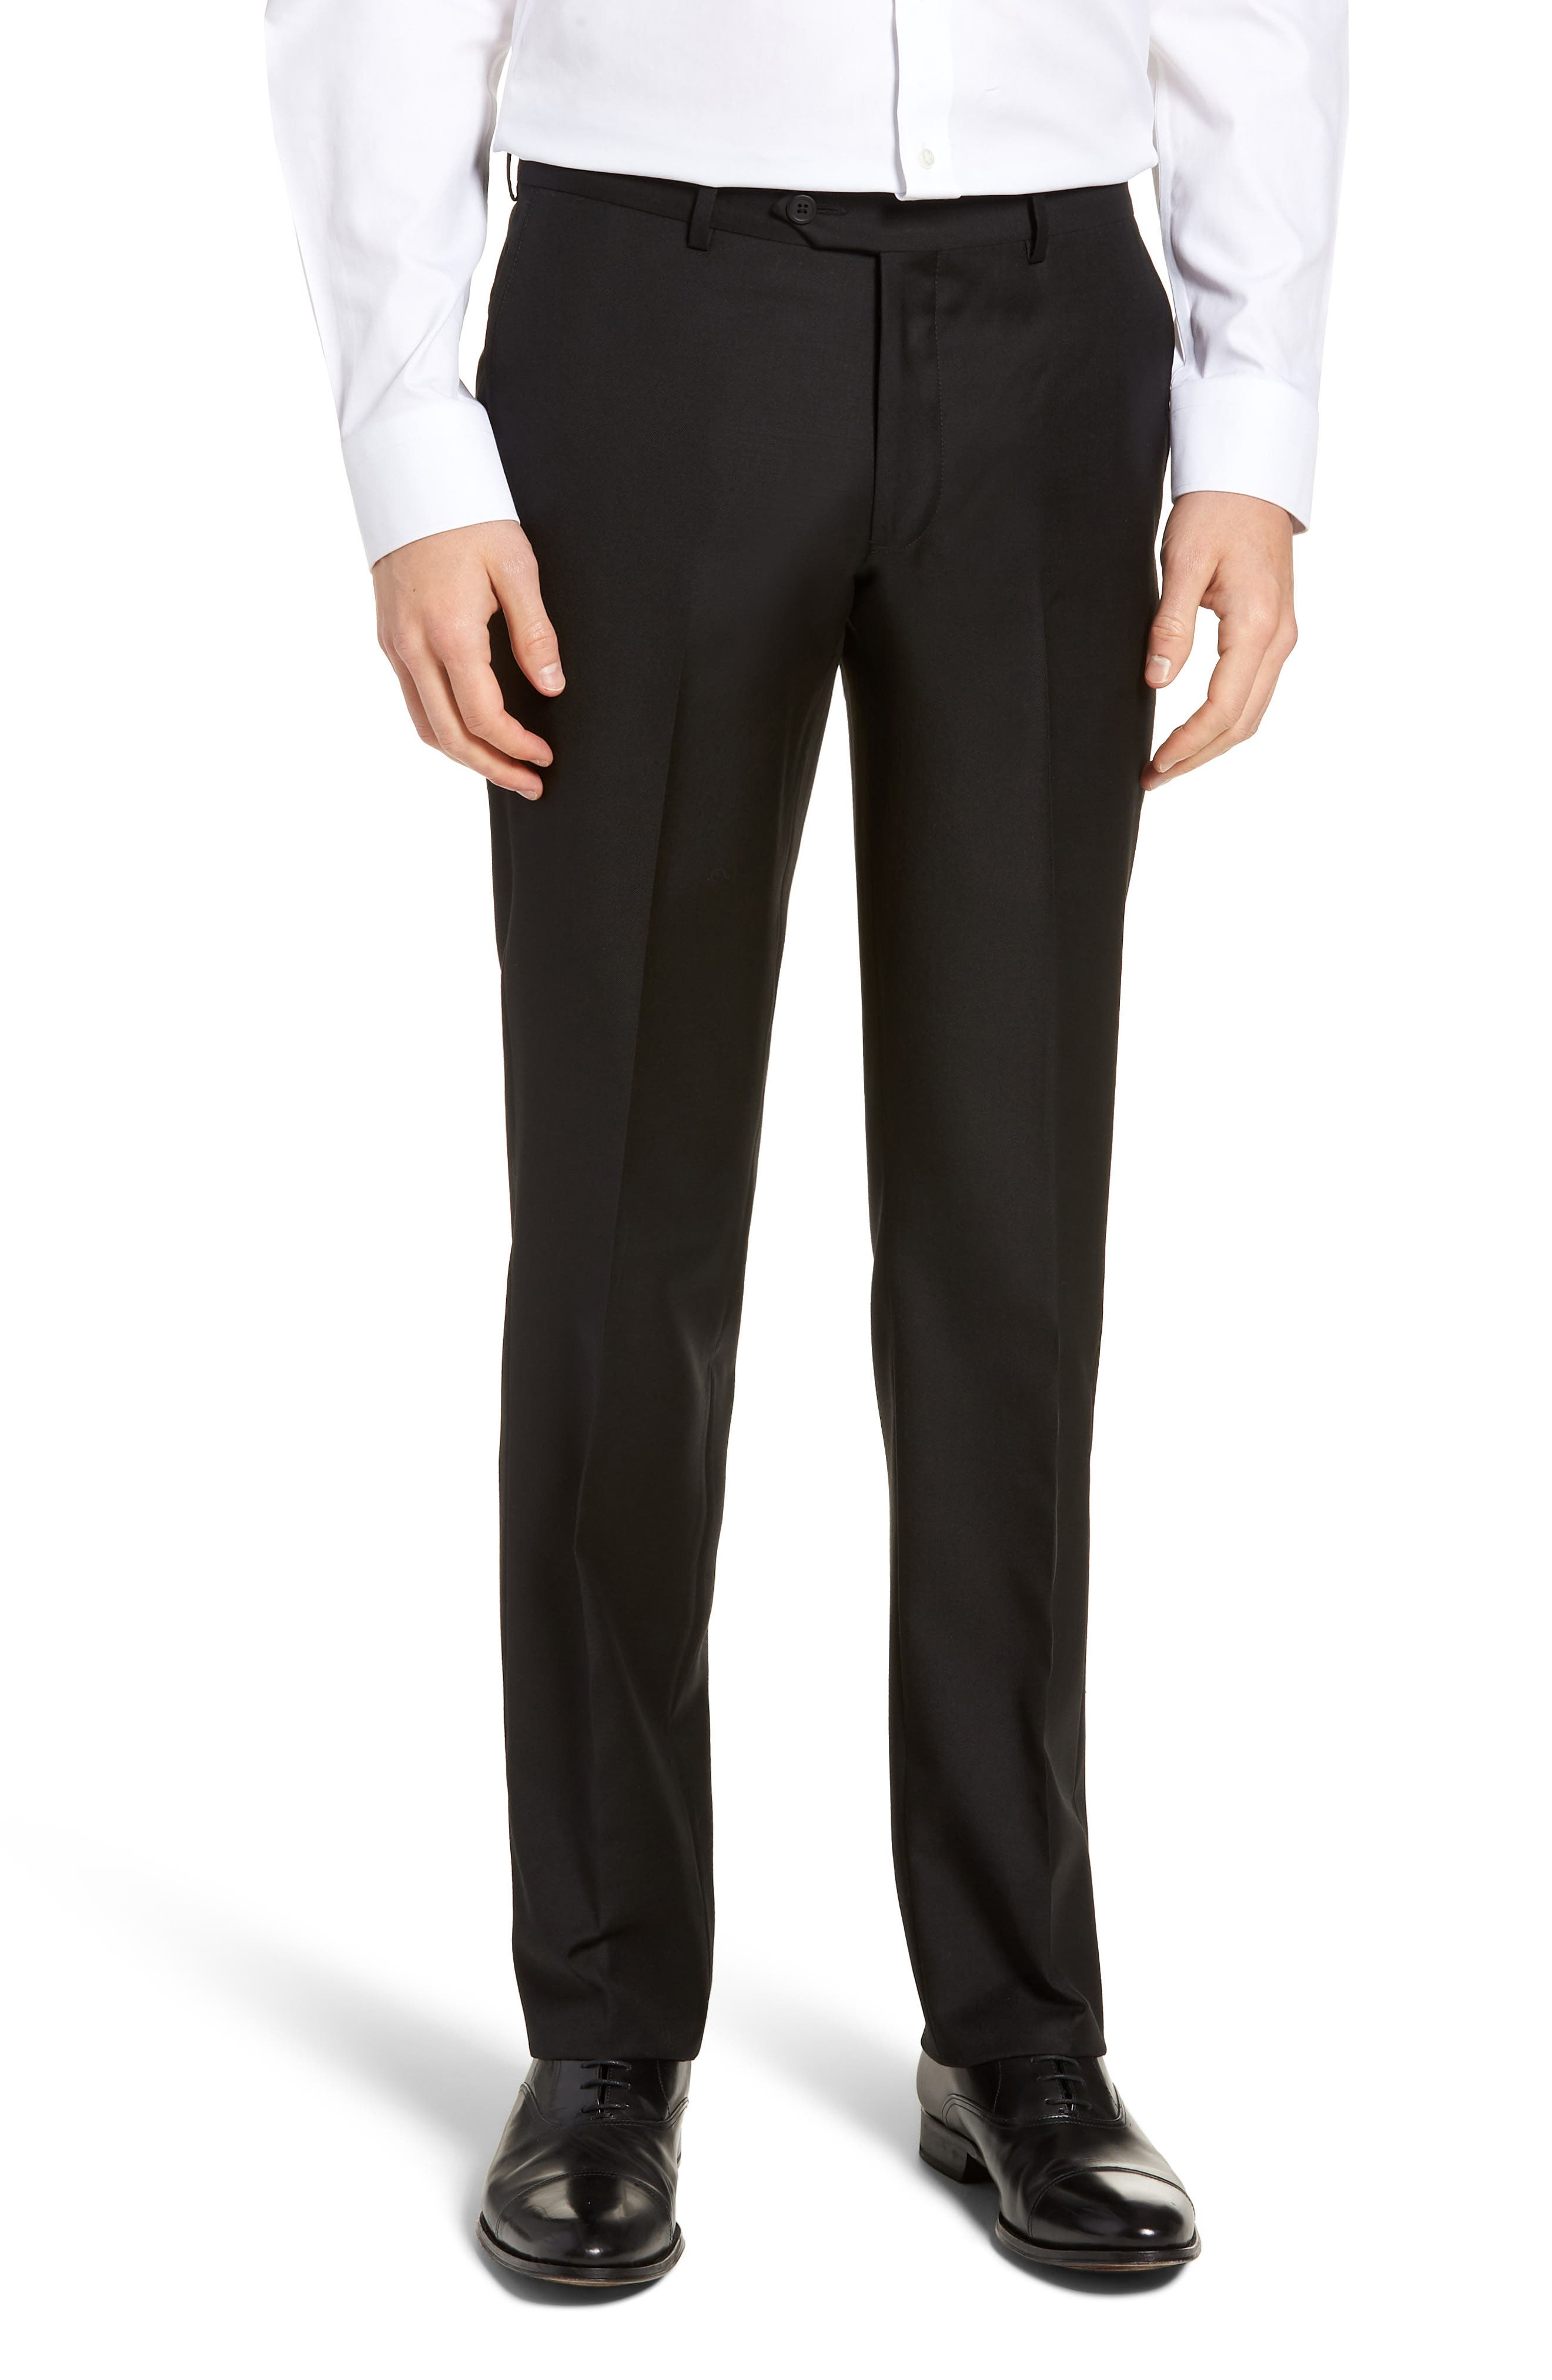 Nordstrom Men's Shop Flat Front Lightweight Wool Trousers